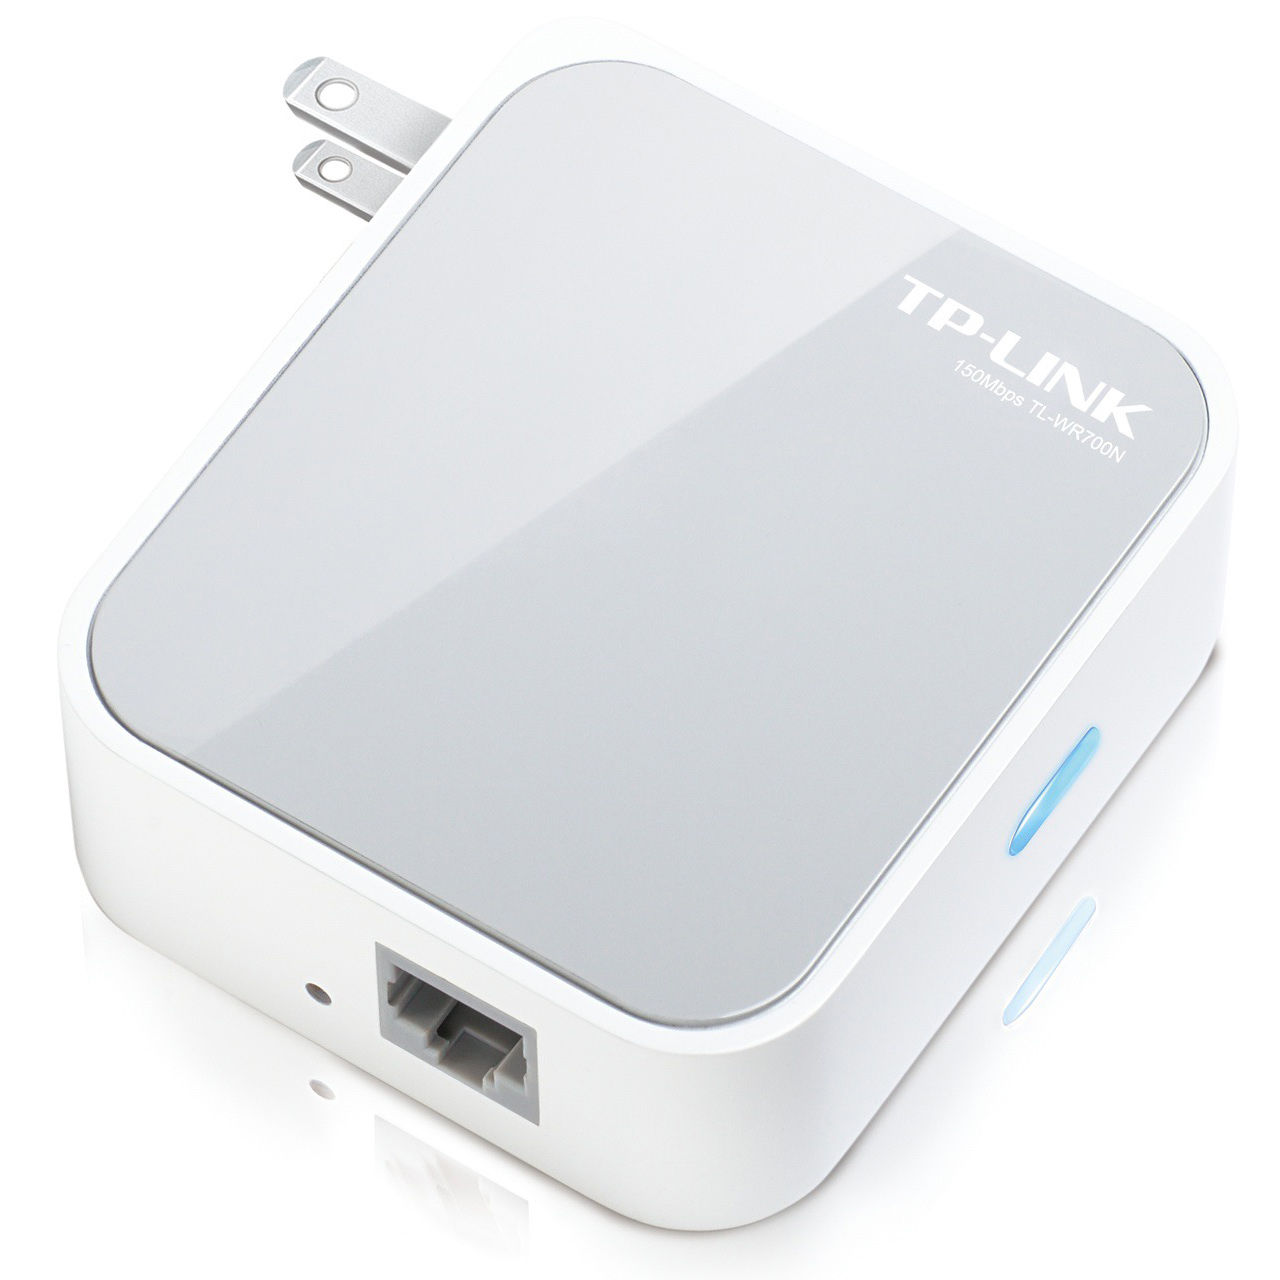 TP-LINK TL-WR700N 150M ワイヤレス WIFI ミニ ポータブル ルーター